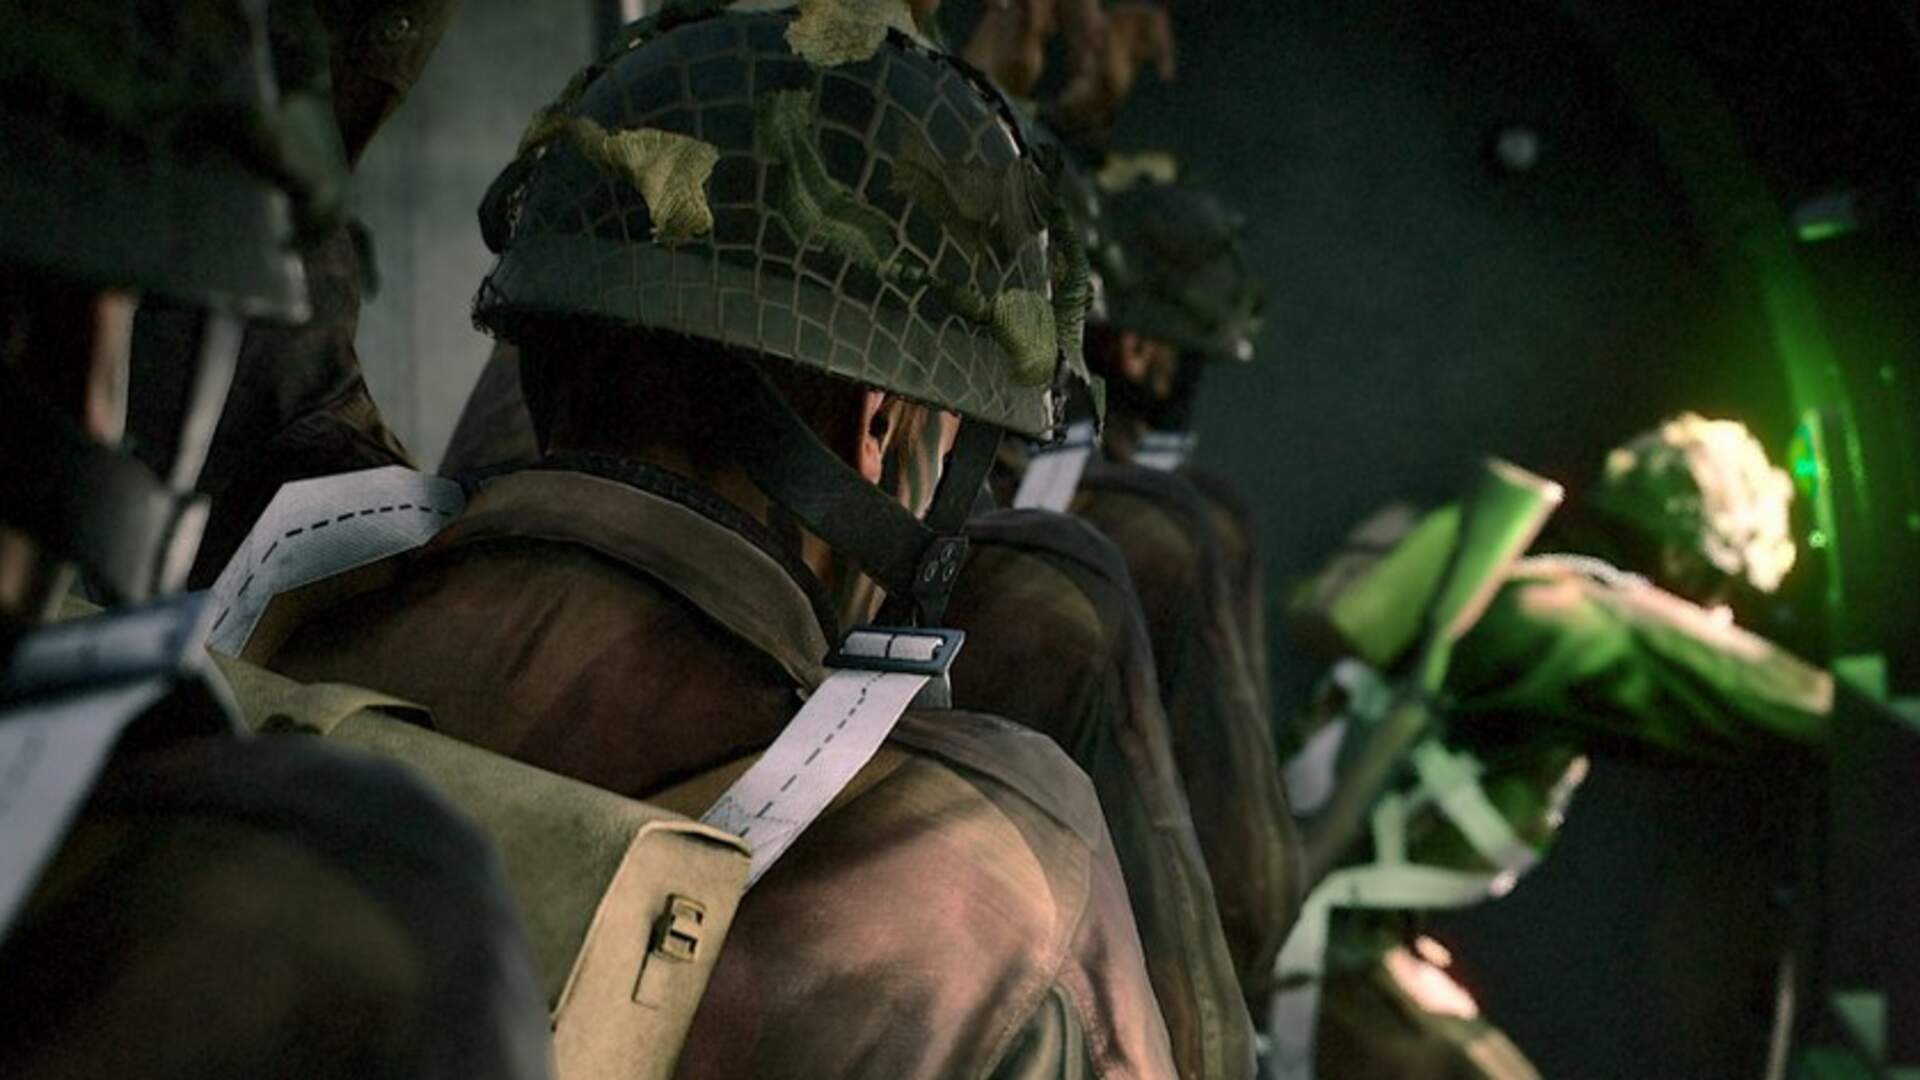 WW2 Sim 'Post Scriptum' Devs Apologize After Online Backlash Over Missing Features, Open Refunds for Any Player